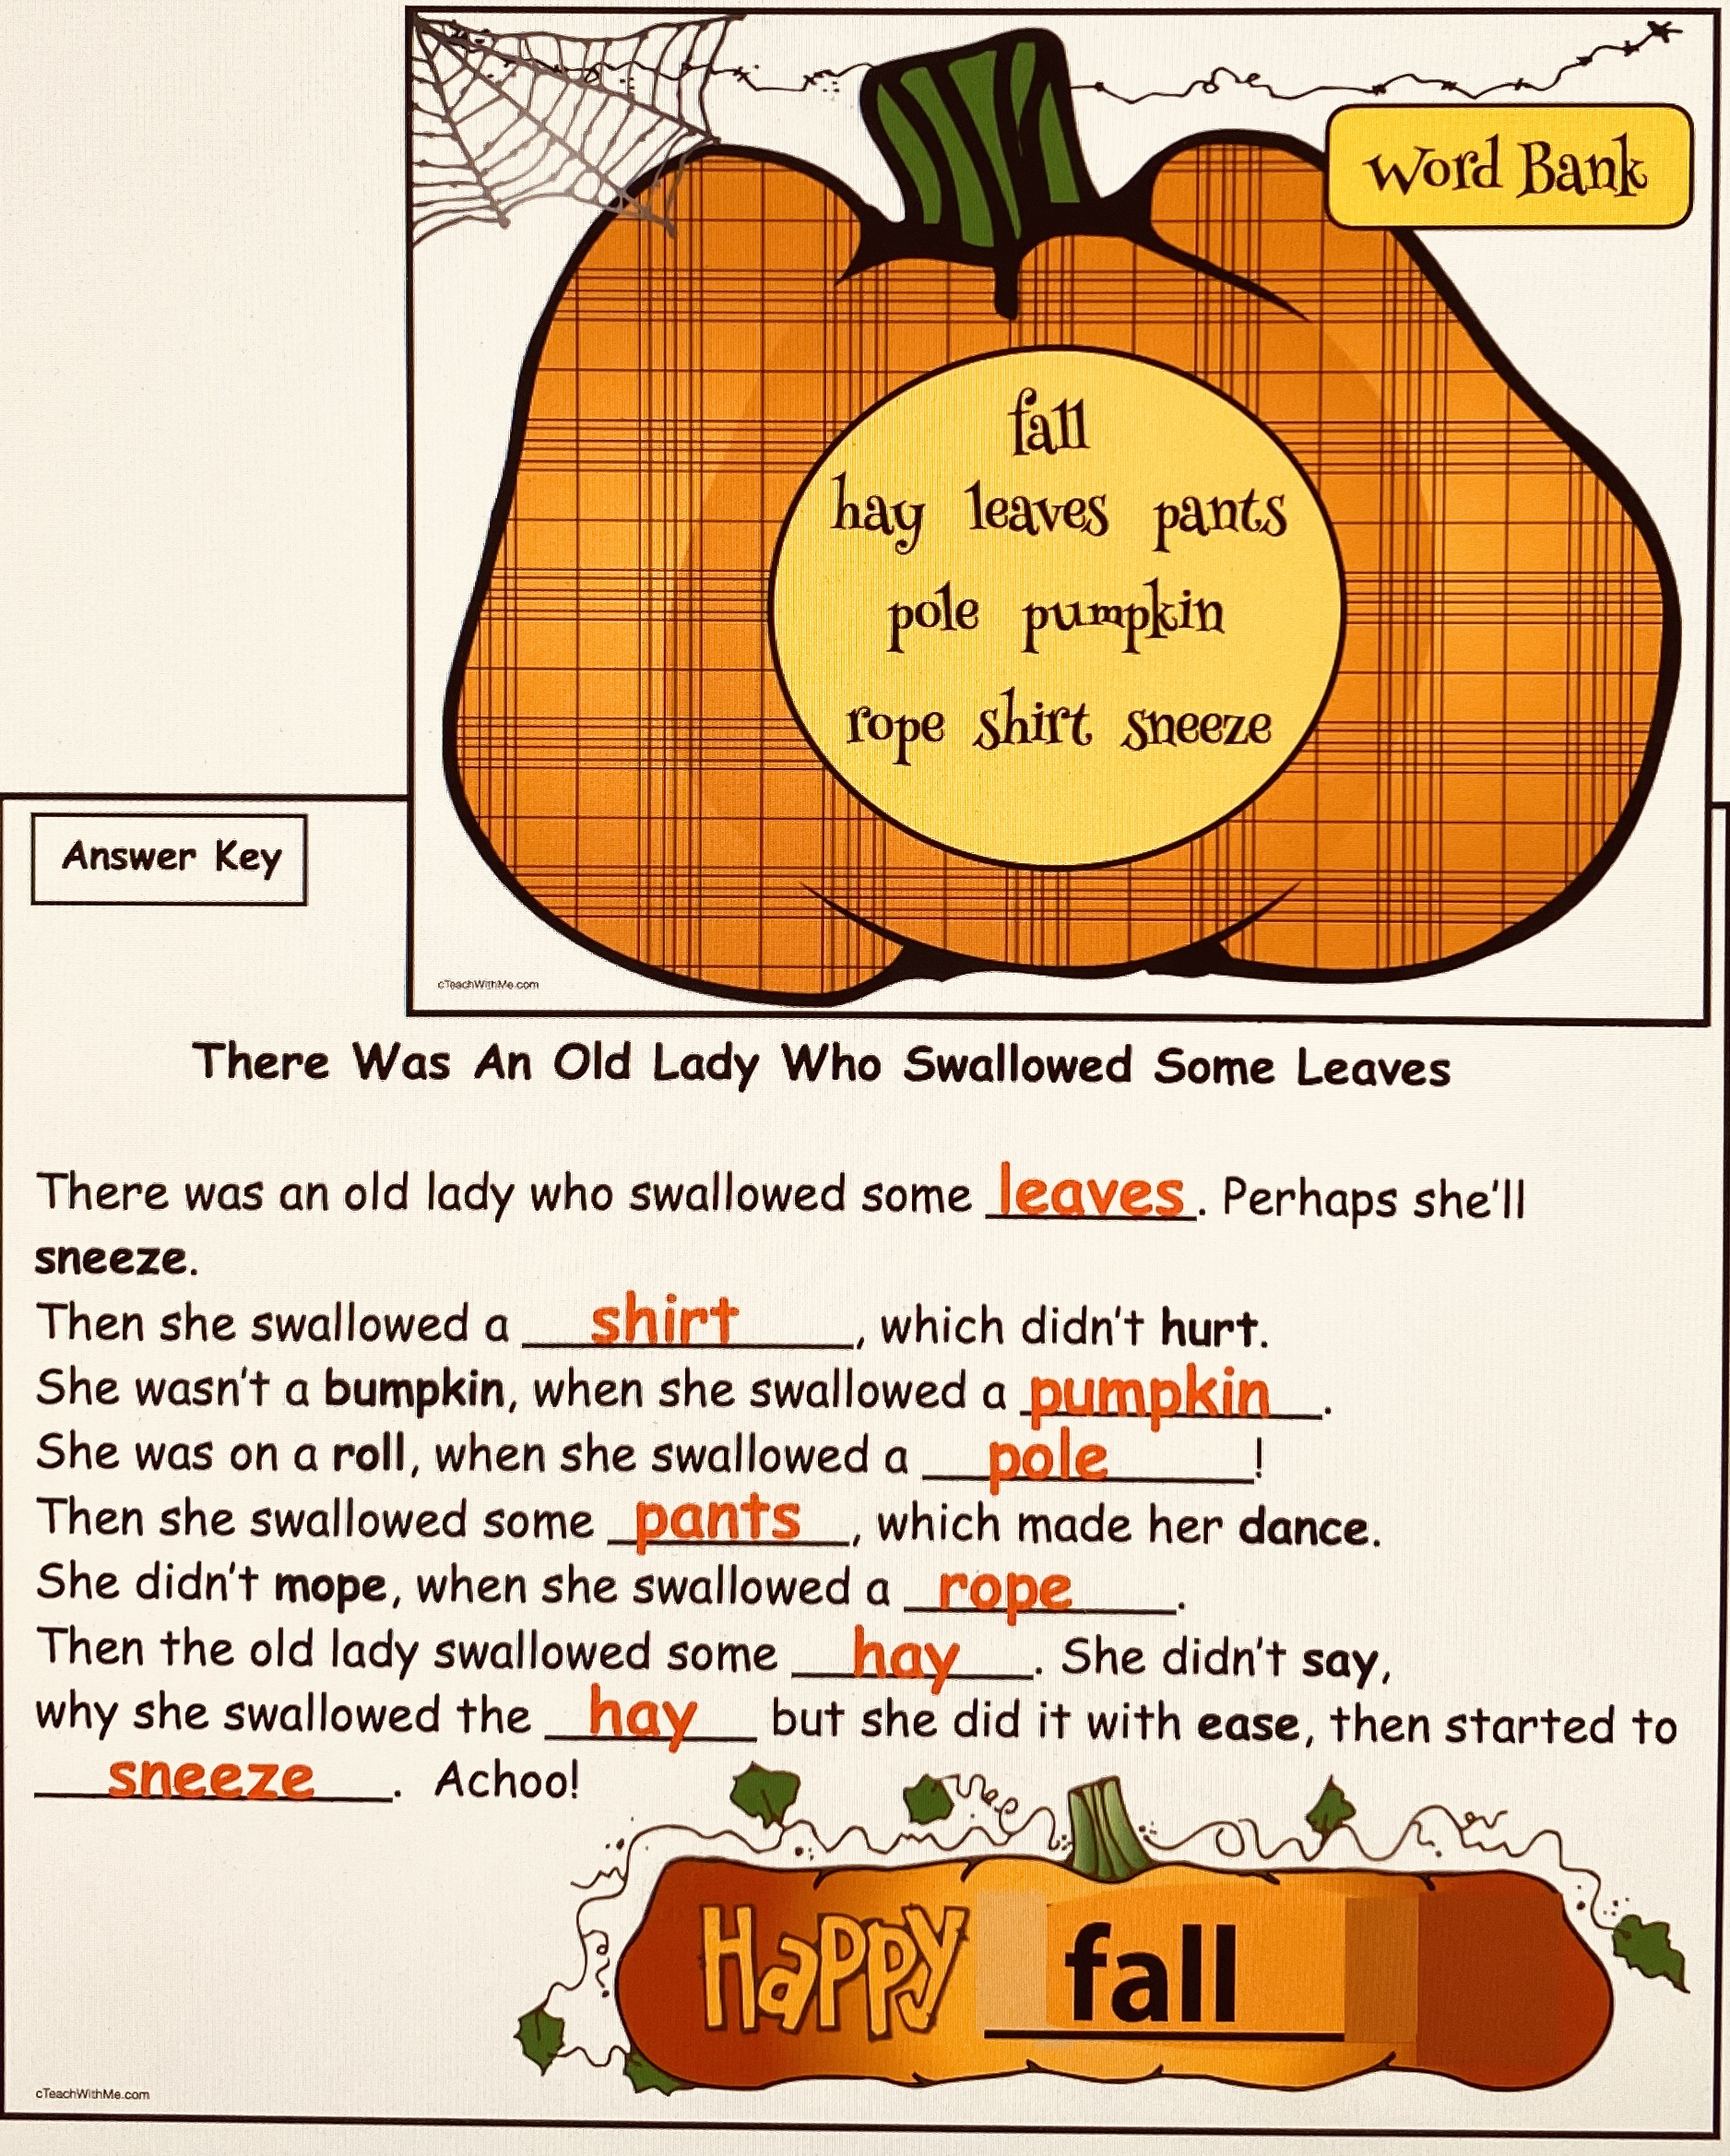 word bank worksheet for the old lady who swallowed some leaves, activities for the little old lady who swallowed some leaves, the little old lady who swallowed some leaves, activities for there was an old lady, fall bulletin board ideas, fall writing prompts, sequencing & retelling a story activties, literacy centers for fall